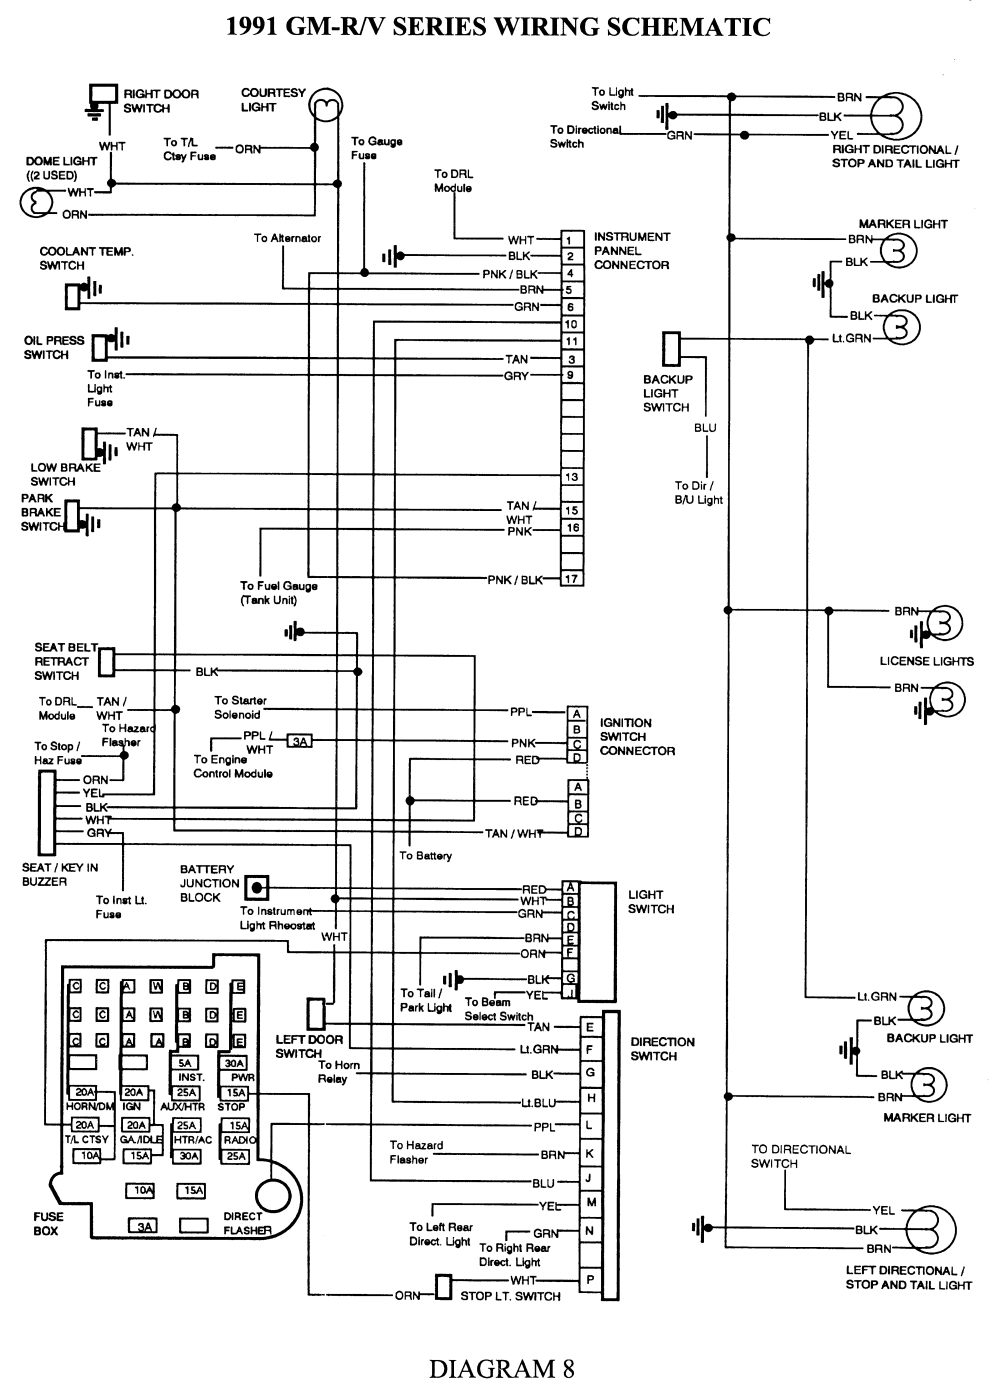 chevy suburban tail light wiring diagram